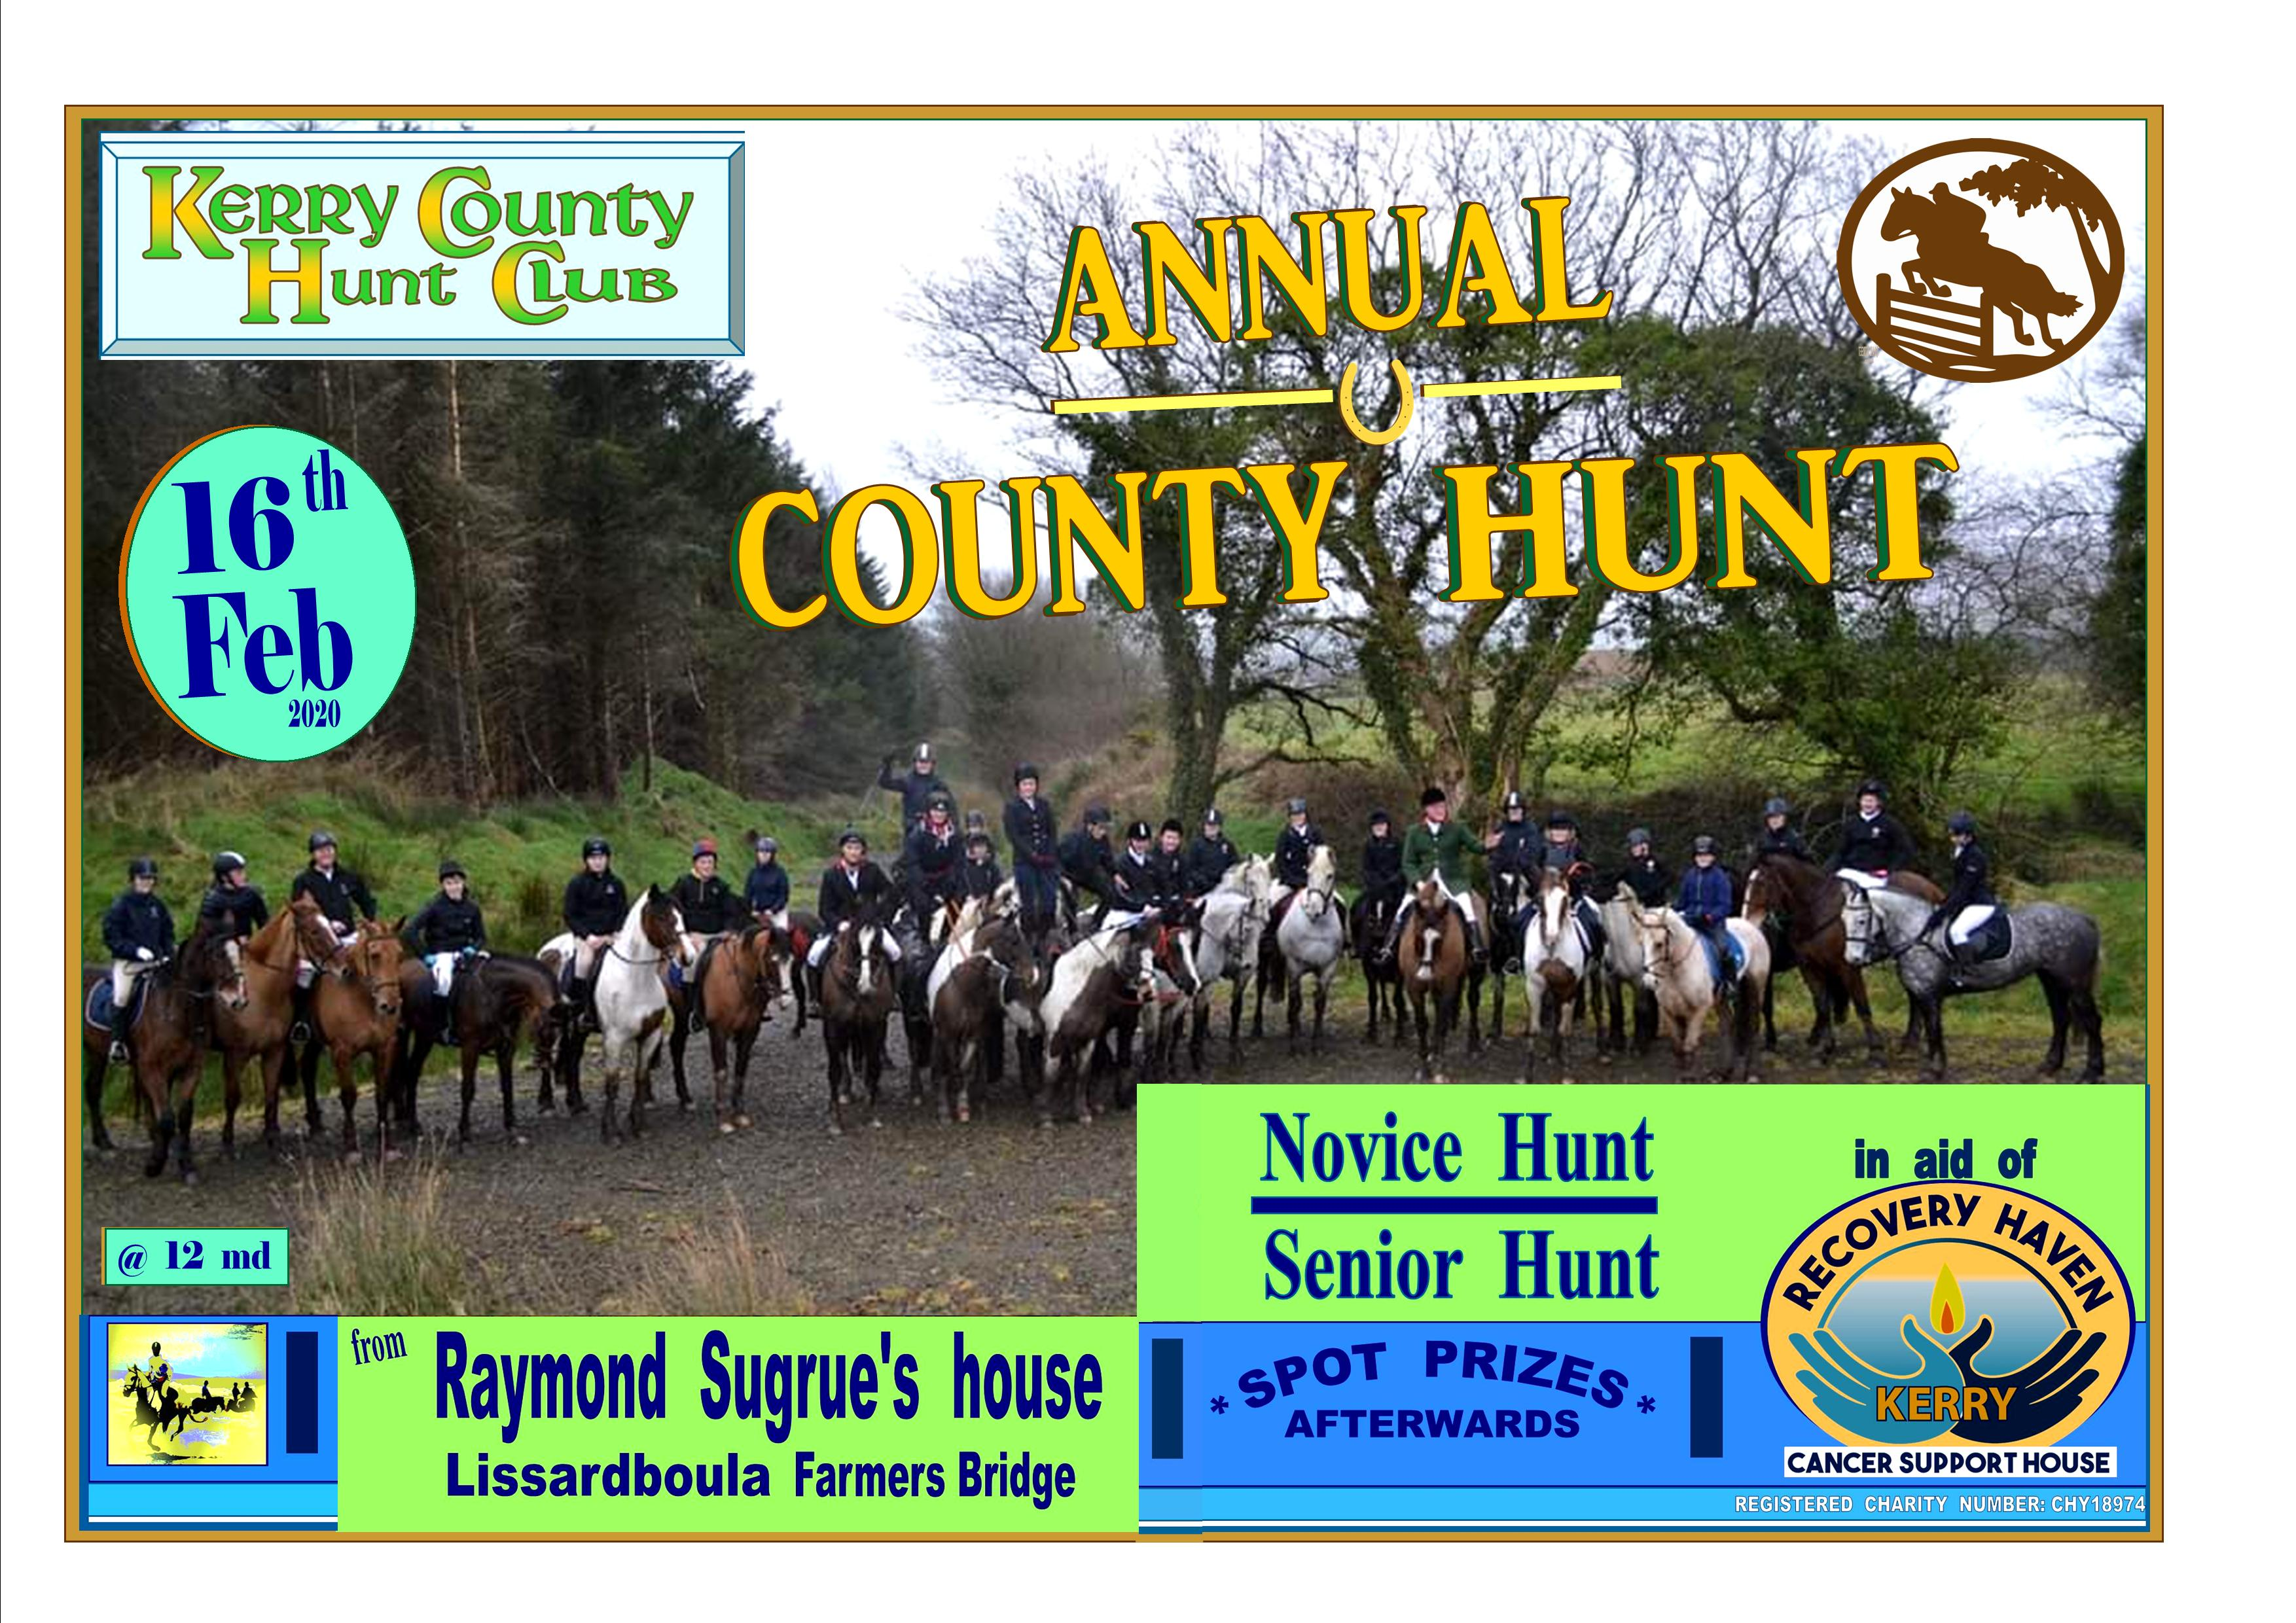 Annual Charity Hunt 16th February 2020